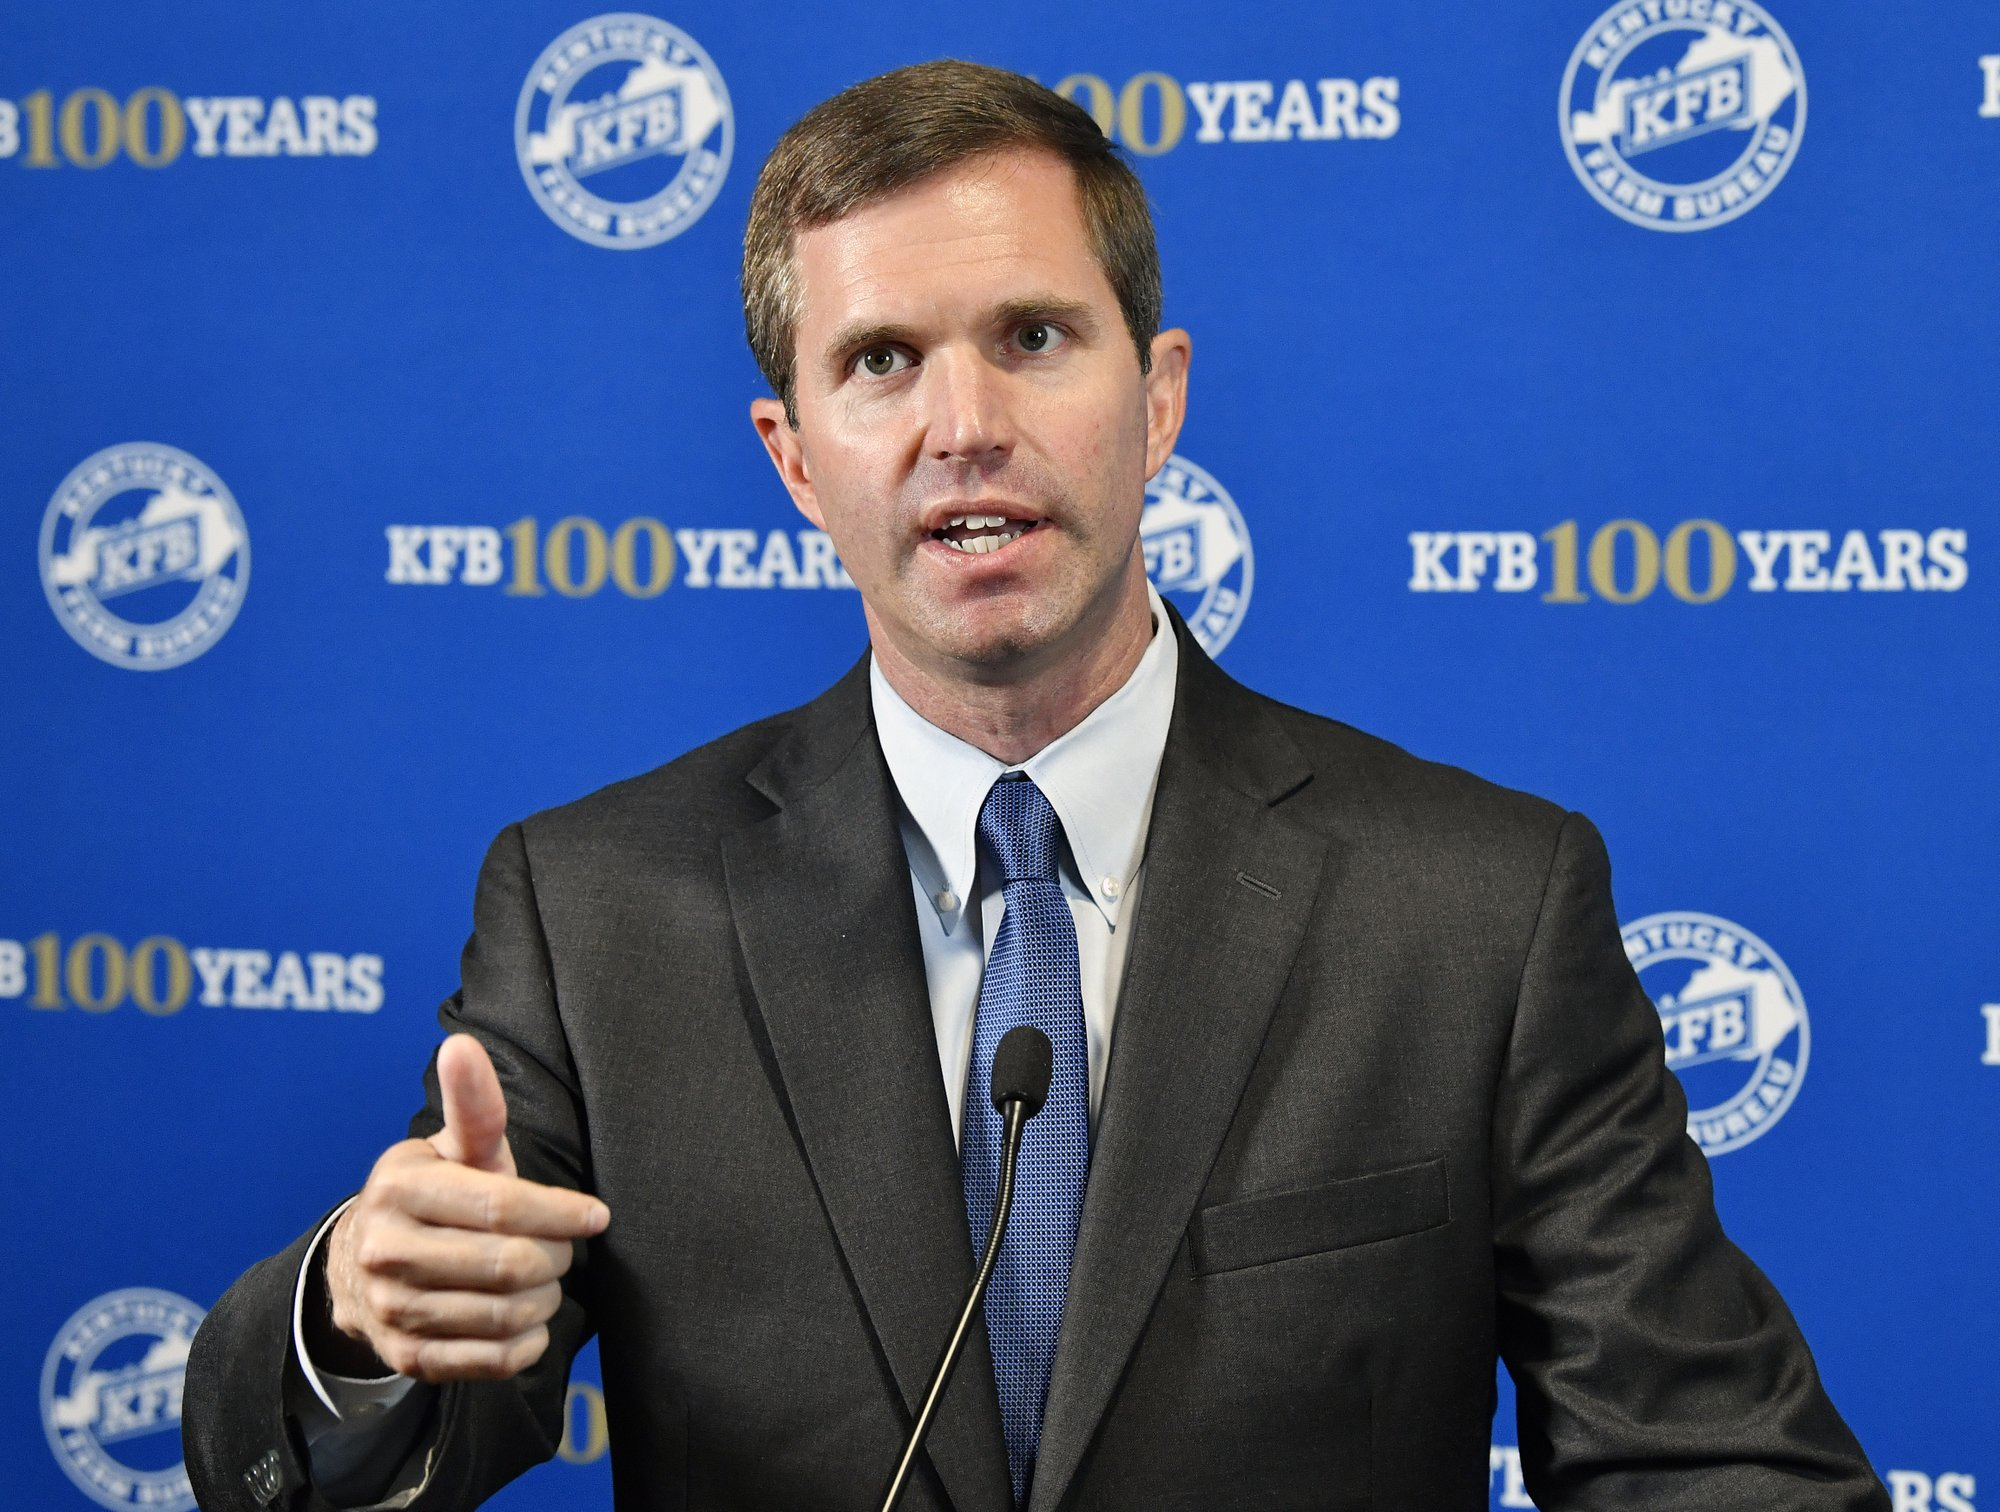 andy beshear - photo #16